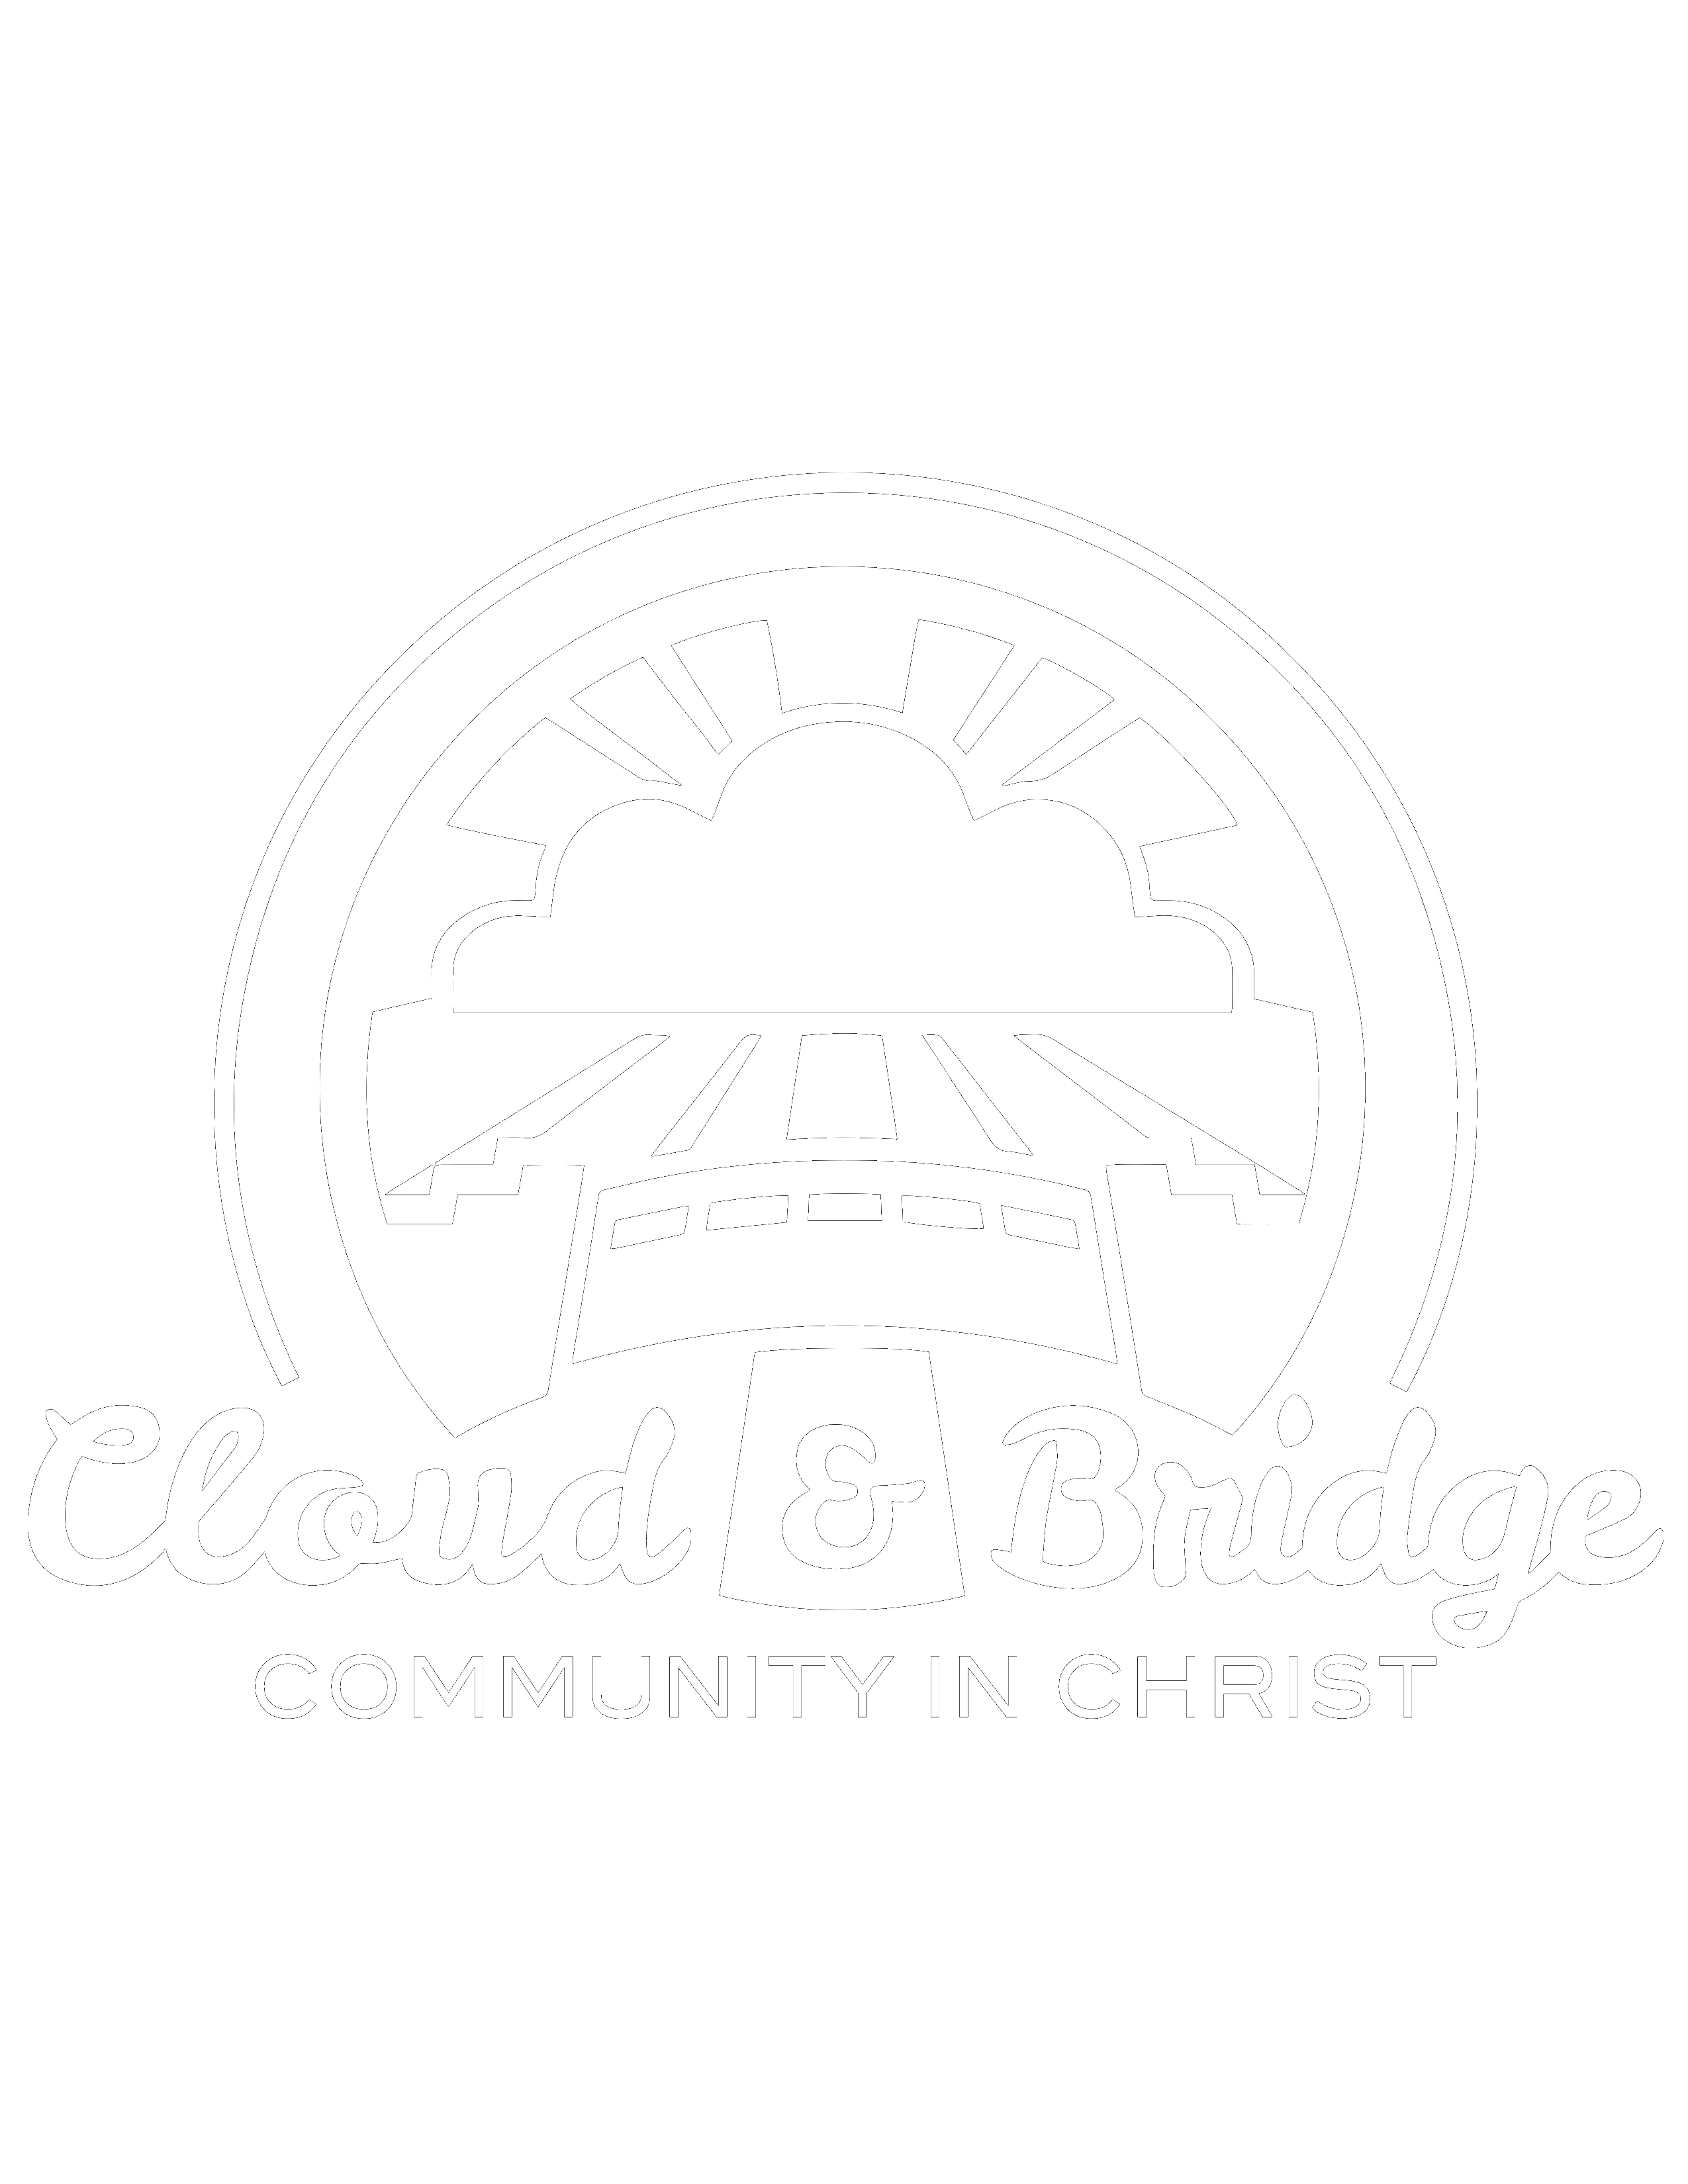 WELCOME TO CLOUD & BRIDGE